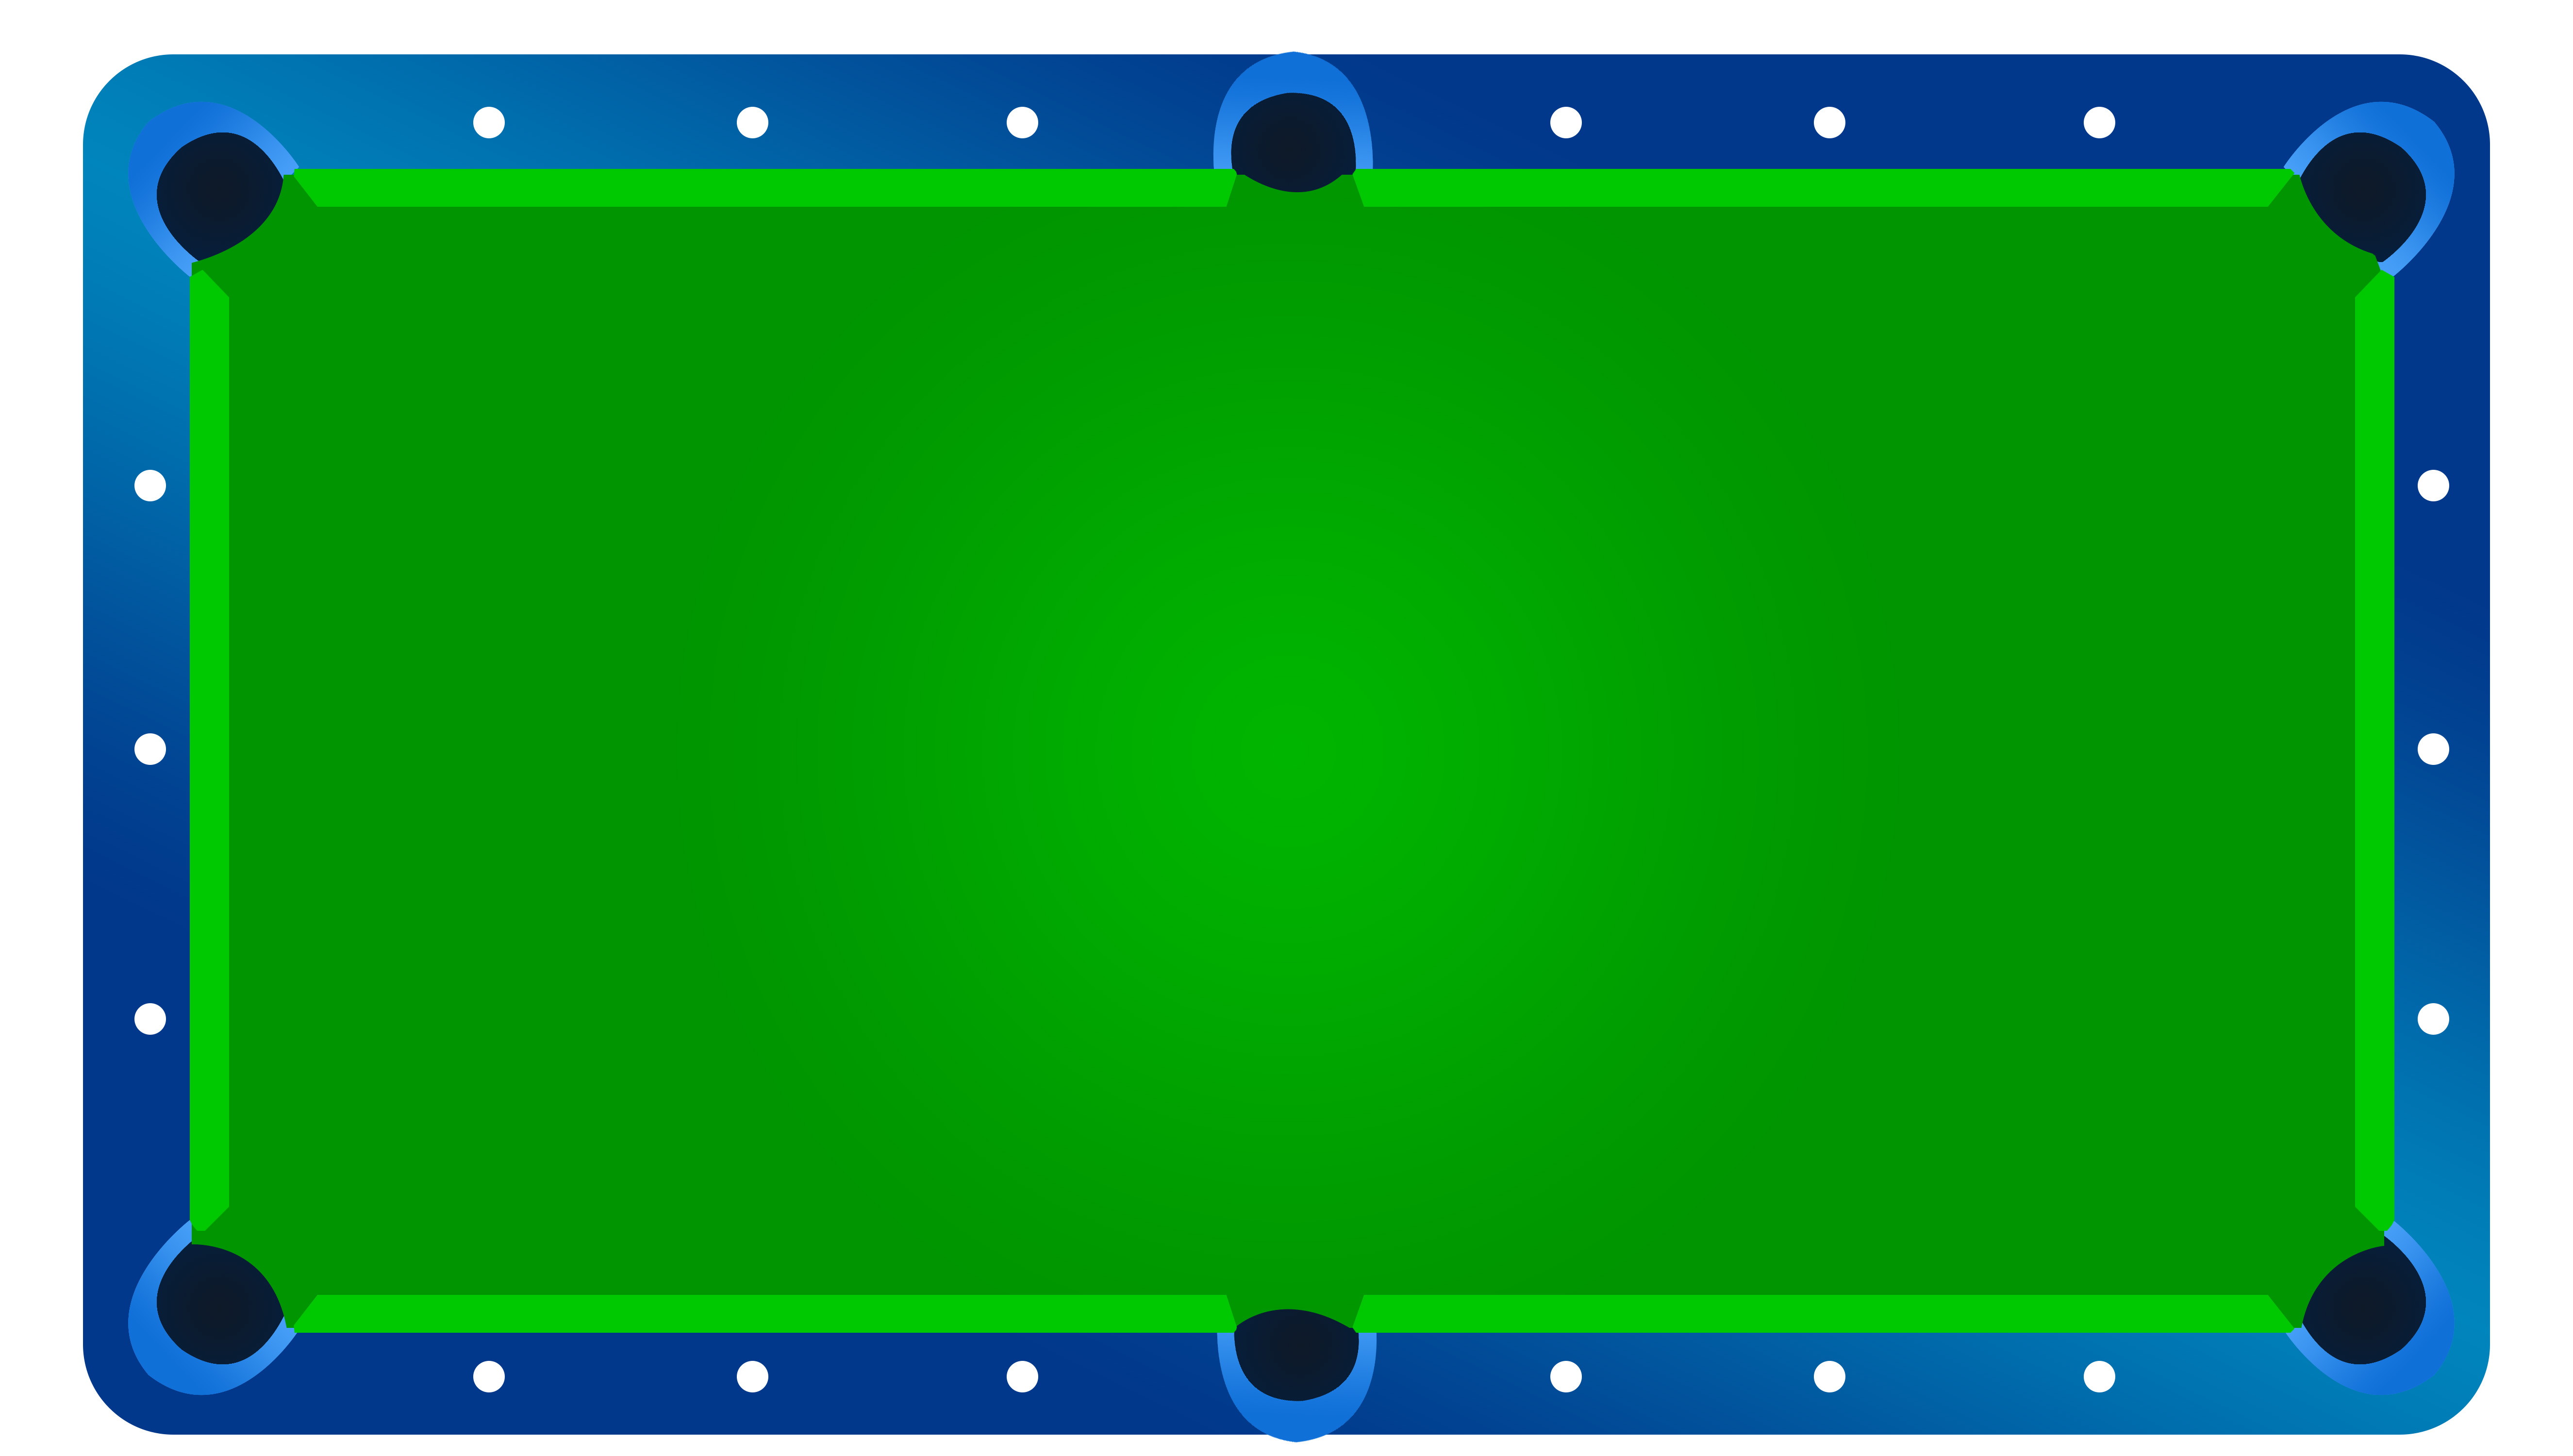 Top view of pool clipart clipart suggest - Pool table images ...